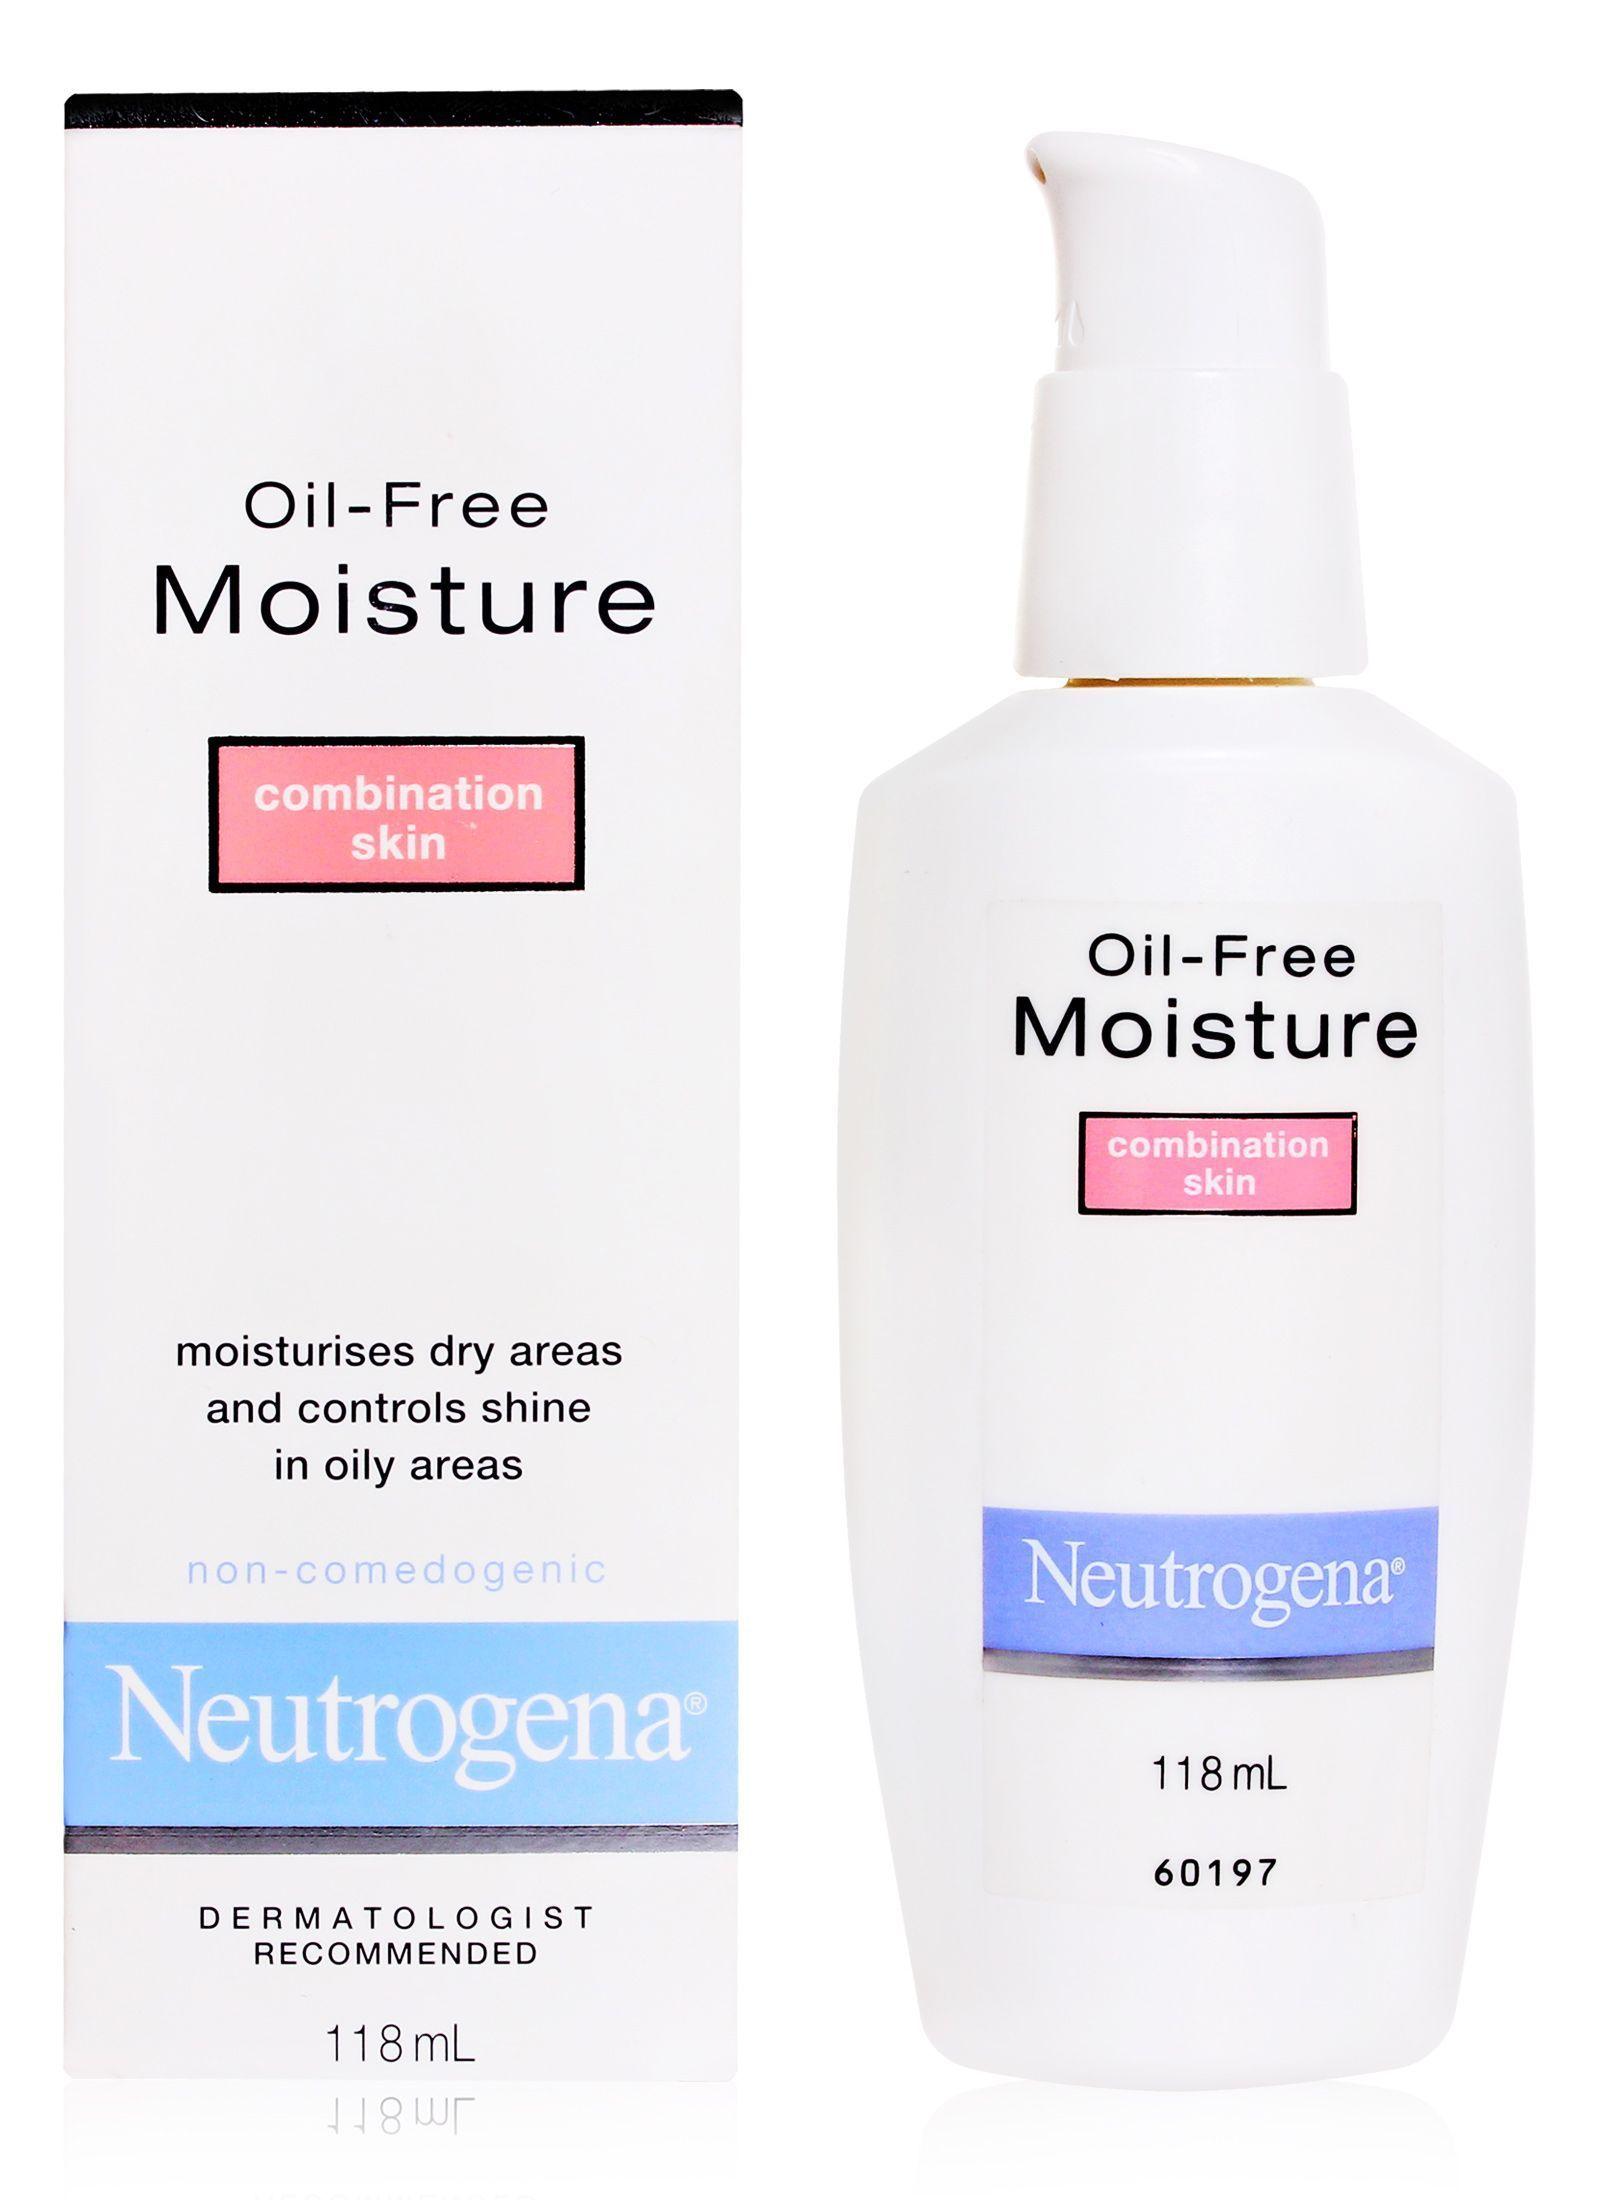 Neutrogena Oil Free Moisturizer Combination Skin My Drugstore Go To Moi Moisturizer For Combination Skin Oil Free Moisturizers Neutrogena Oil Free Moisturizer